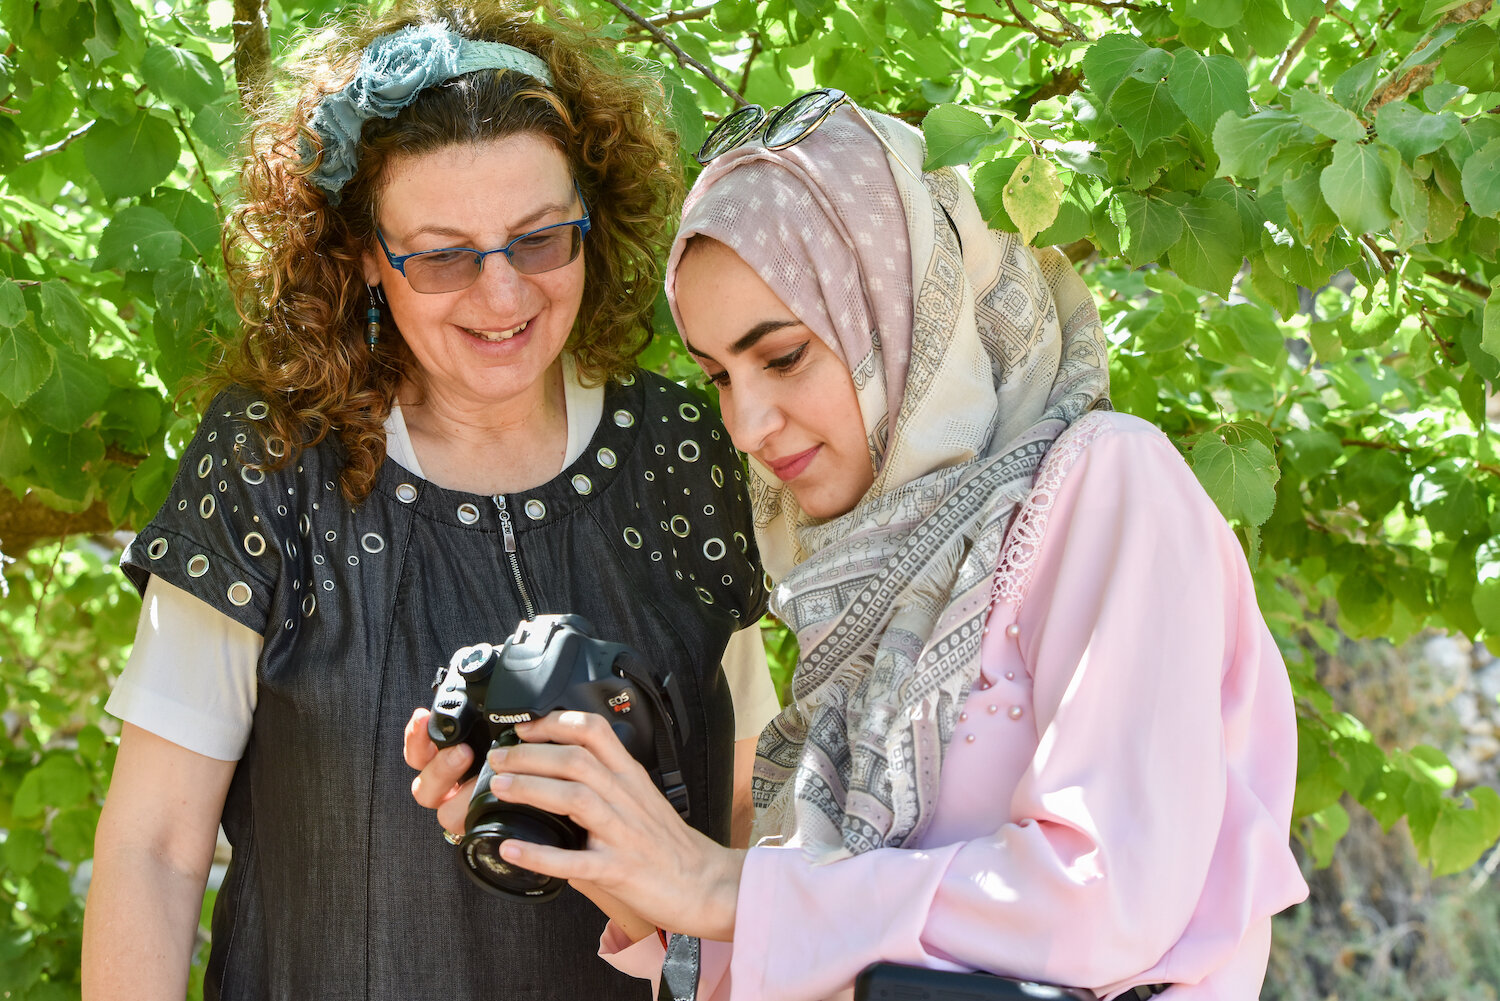 saskia-keeley-photography-humanitarian-photojournalism-documentarian-israel-and-palestine-peace-beyond-sides-towards-reconciliation-roots-non-violence-workshops-8.jpg